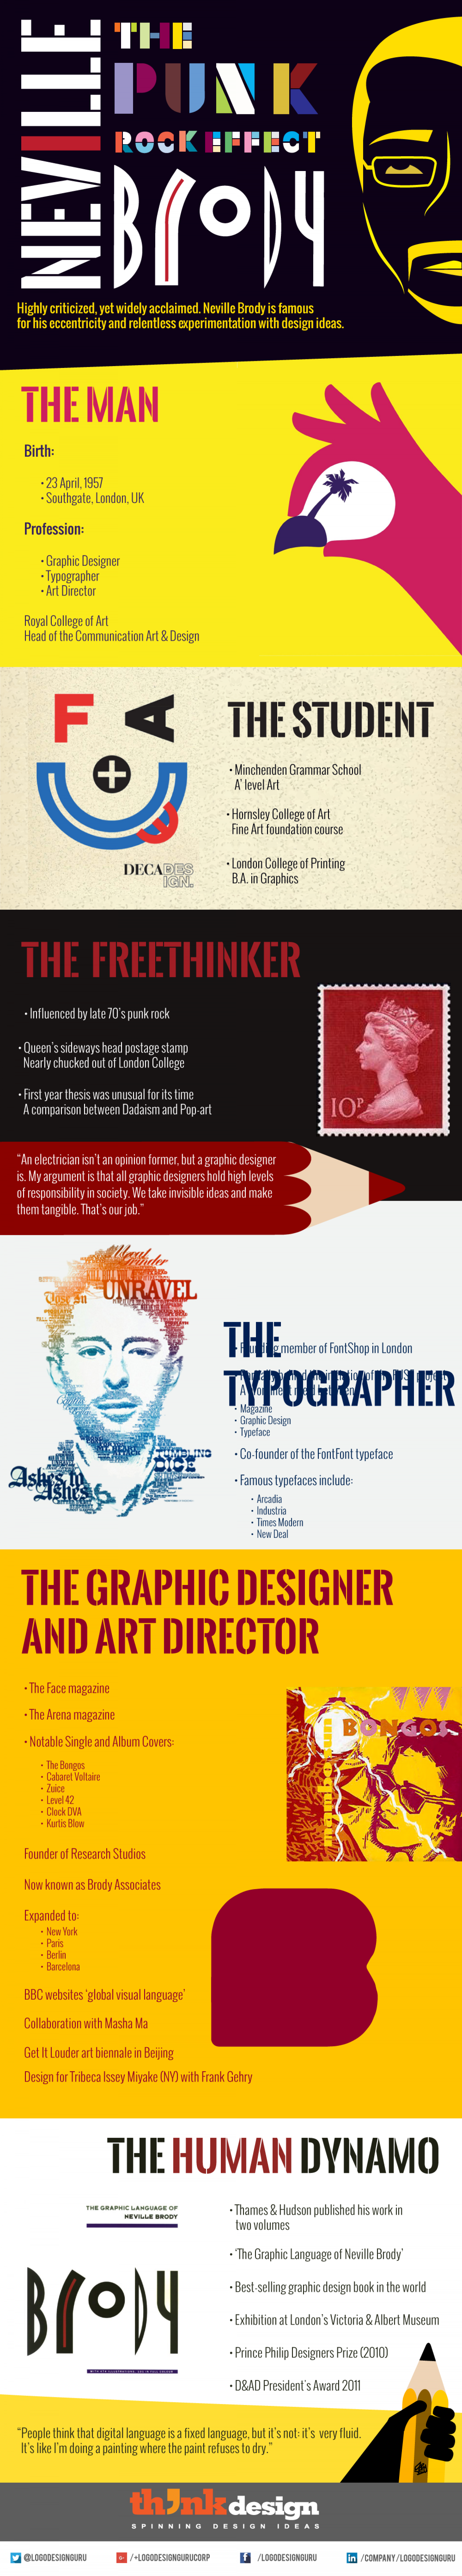 DesignerSpotlight! Neville Brody The Punk Rock Effect in Typography  Infographic